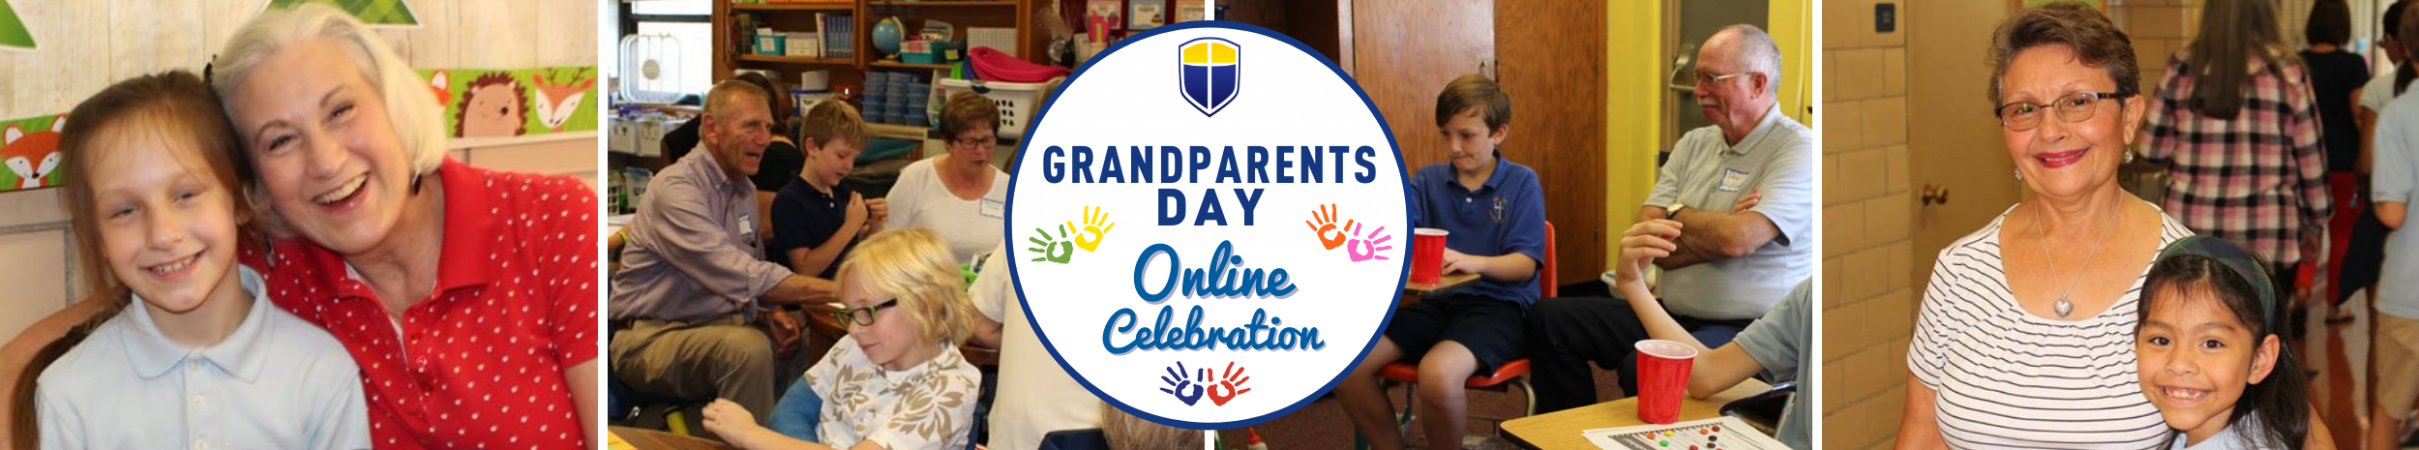 200925 Grandparents Day – Online Celebration – Web Slider